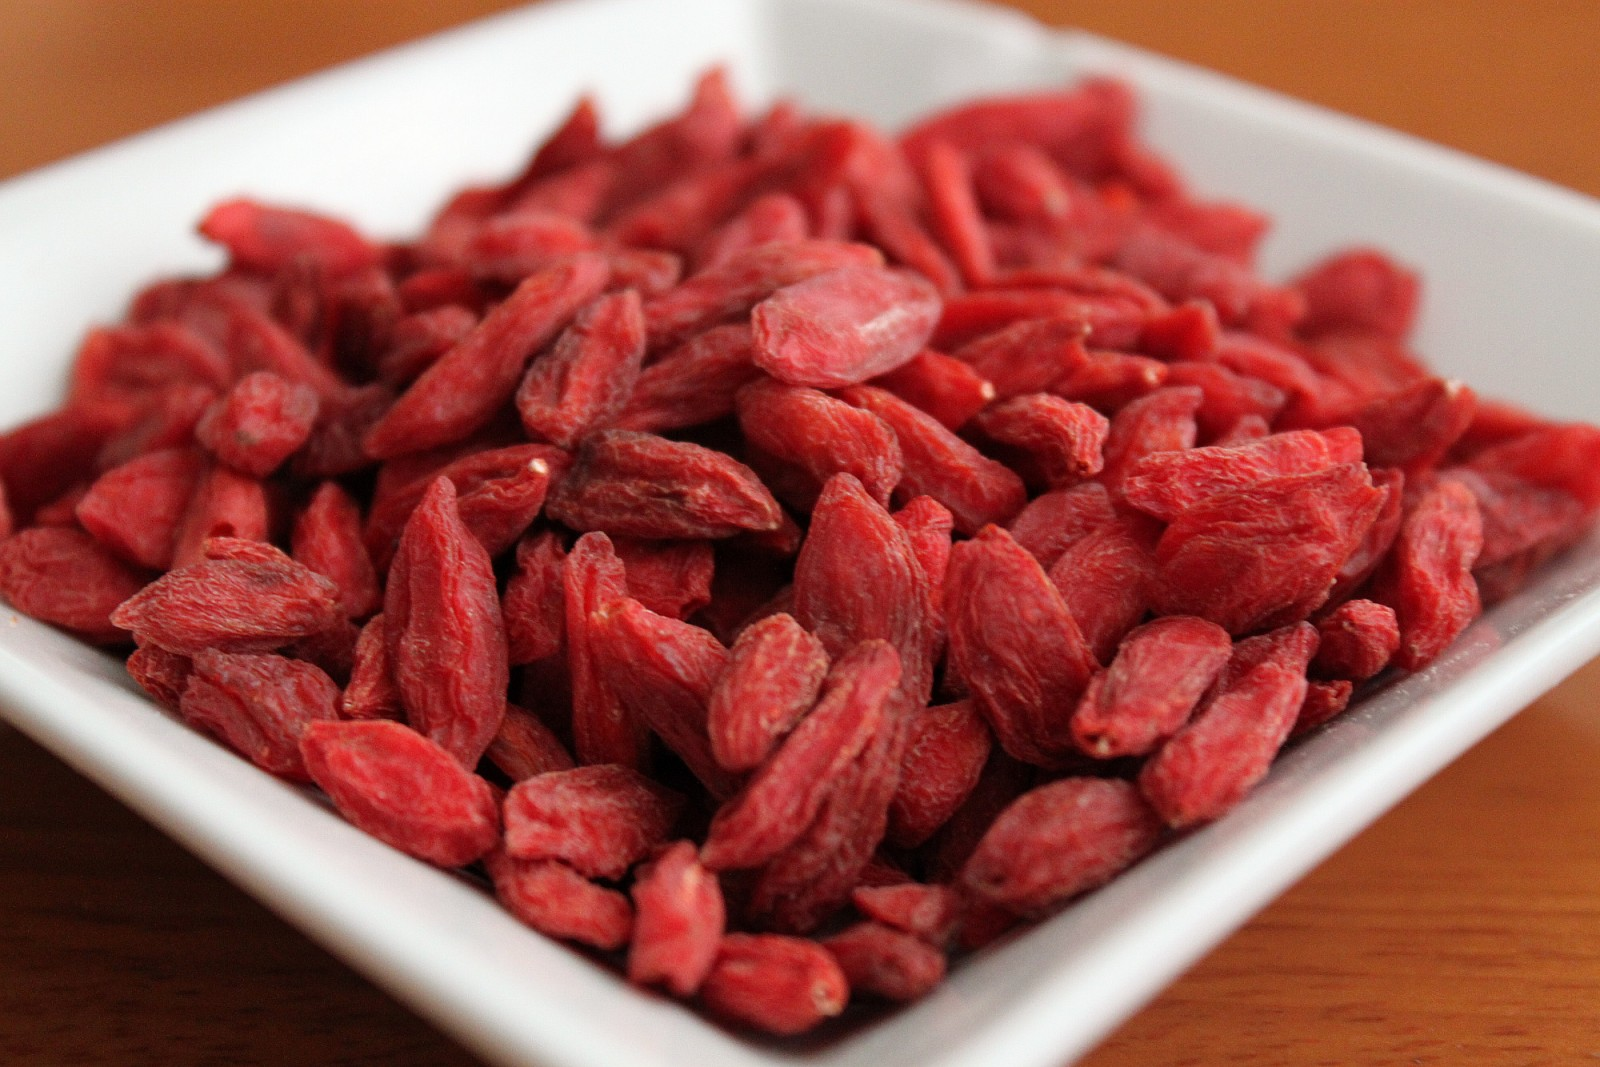 What do goji berries look like 12